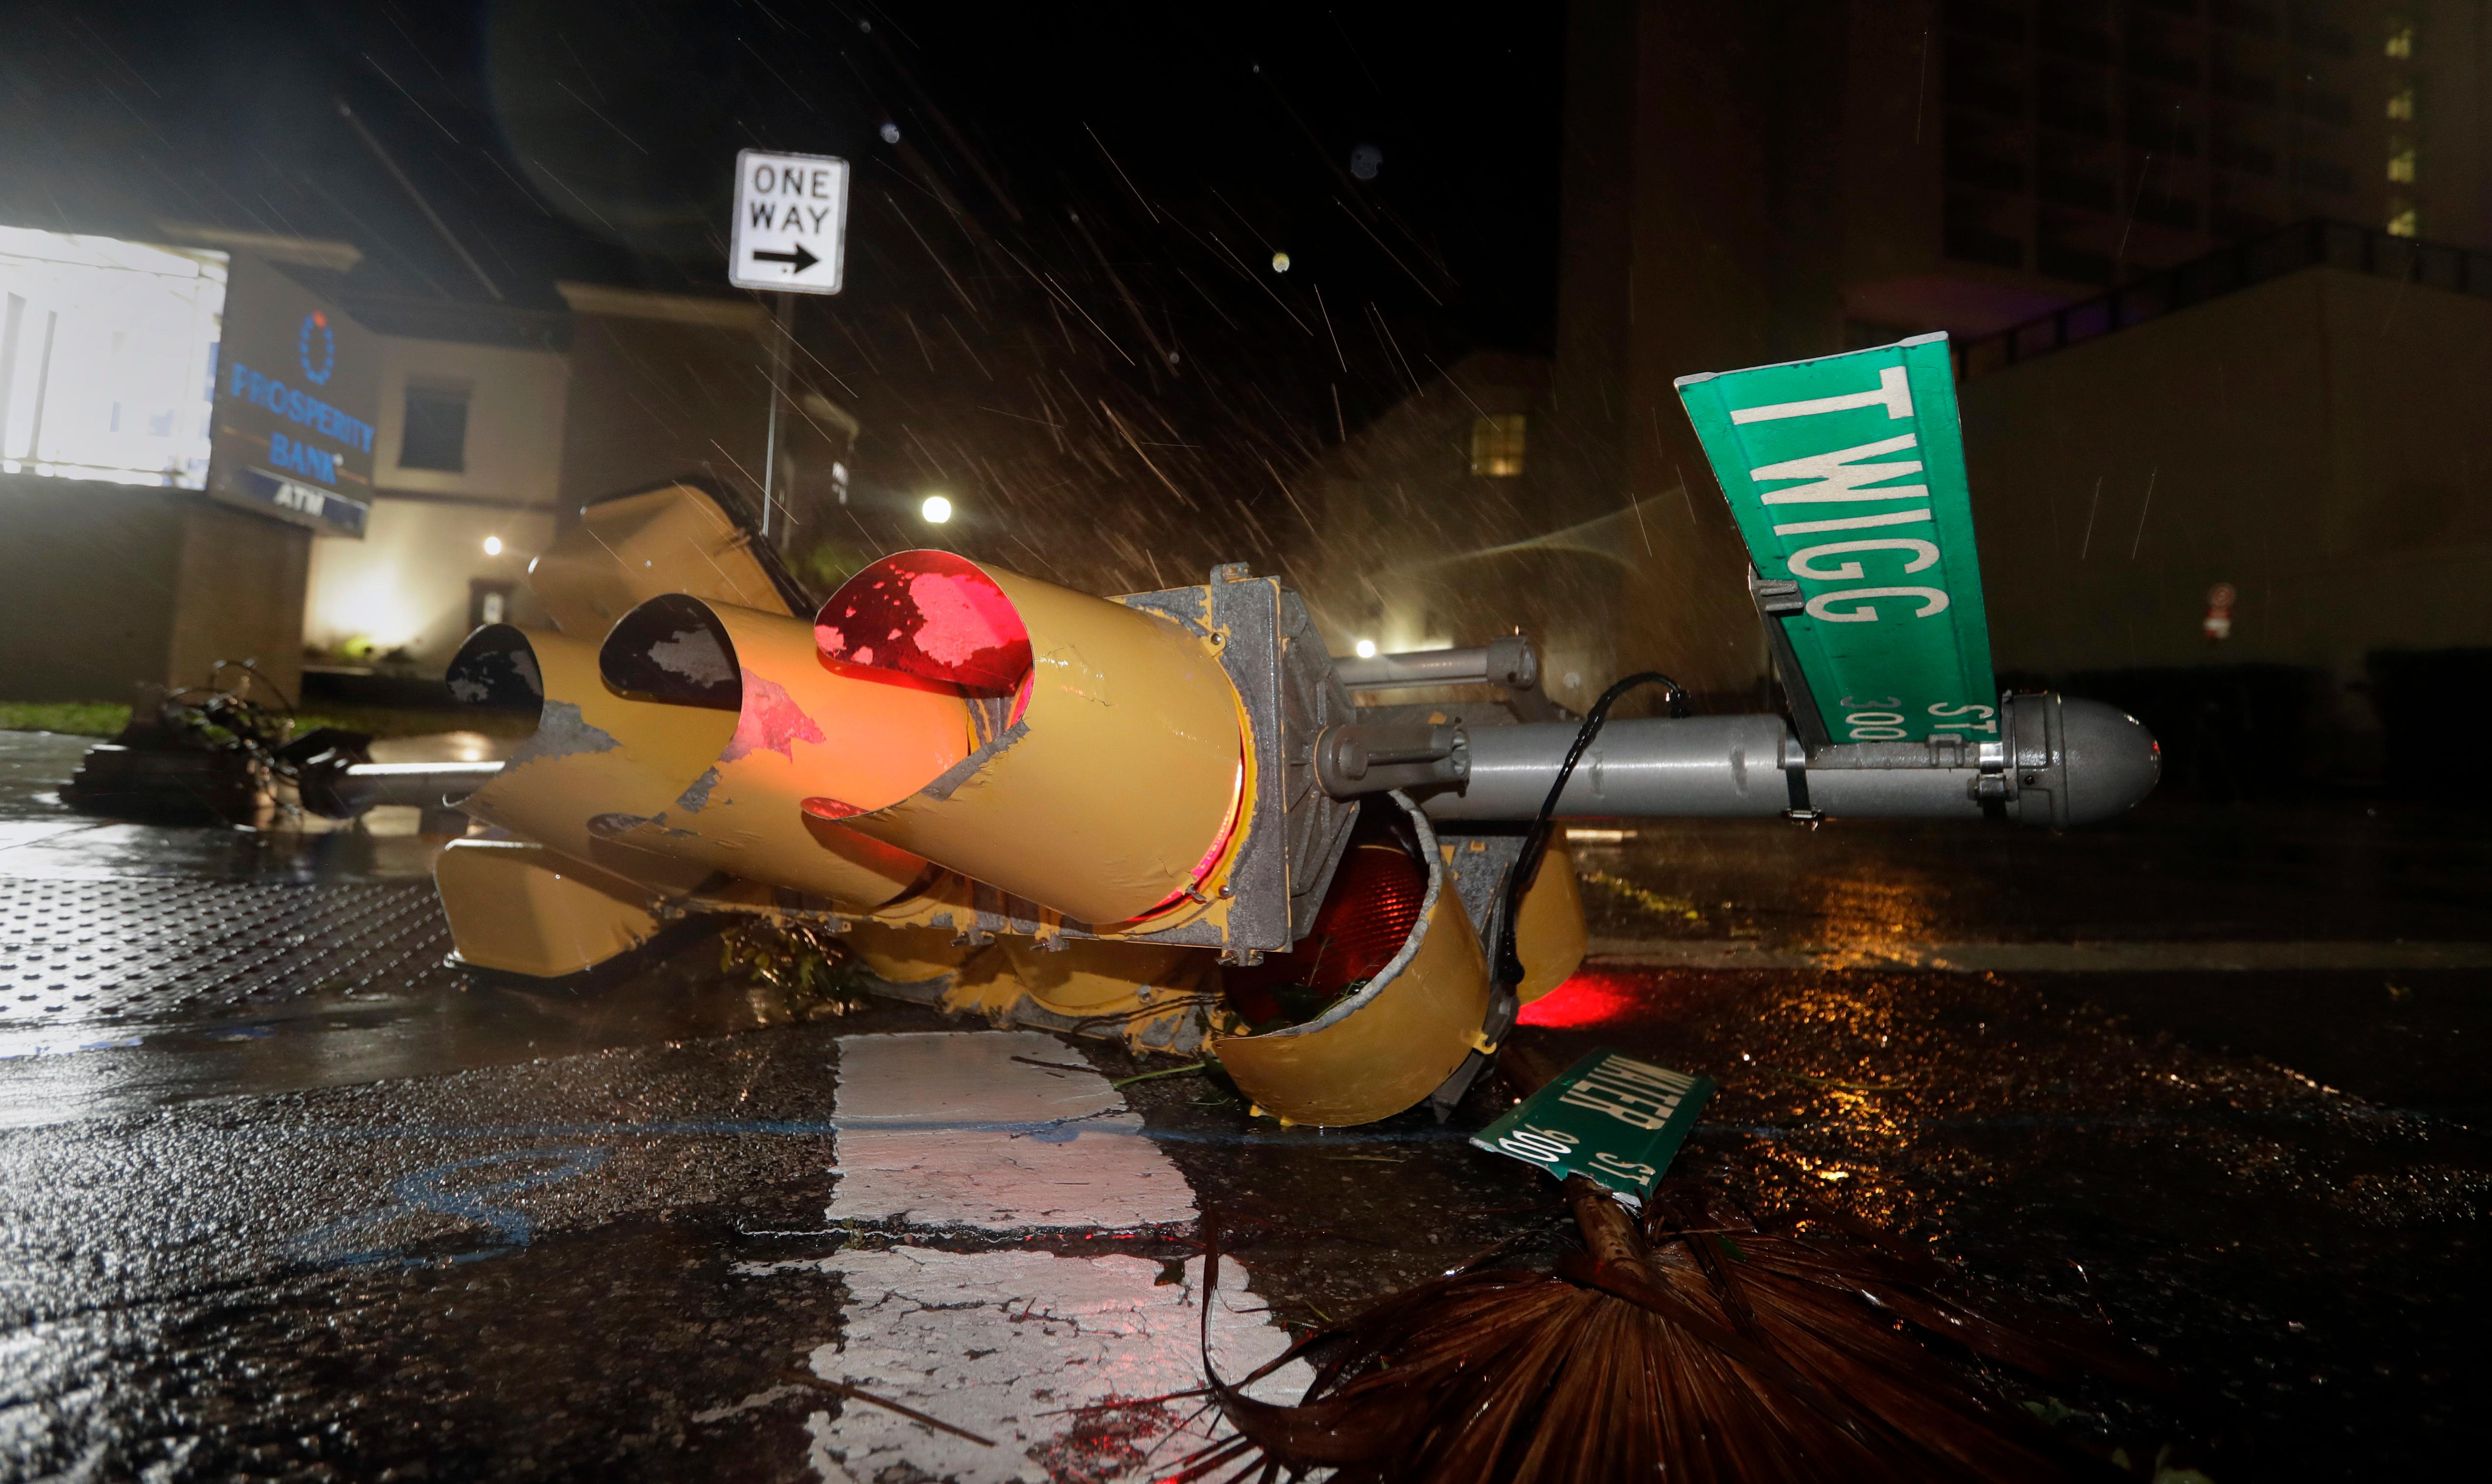 A traffic signal topped by the winds of Hurricane Harvey lies in an intersection of downtown Corpus Christi, Texas, Saturday, Aug. 26, 2017.  Harvey has been further downgraded to a Category 1 hurricane as it churns slowly inland from the Texas Gulf Coast, already depositing more than 9 inches of rain in South Texas. (AP Photo/Eric Gay)